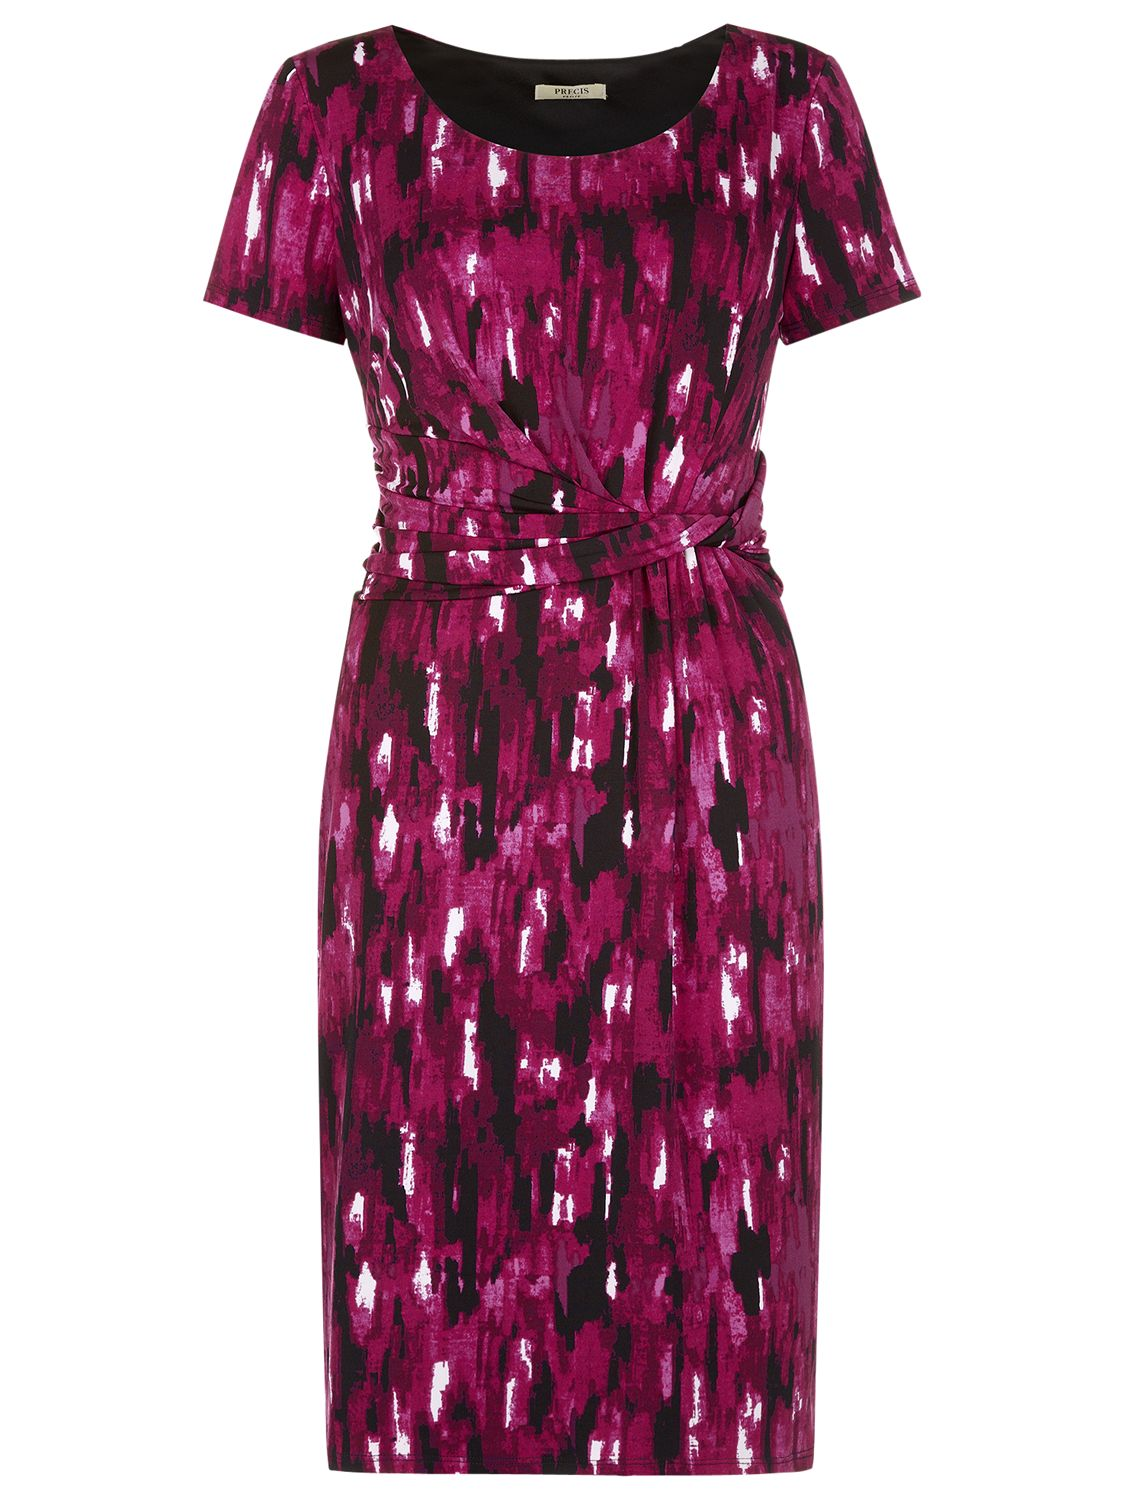 precis petite brushstroke dress berry, precis, petite, brushstroke, dress, berry, precis petite, 18|14|16|10|8, clearance, womenswear offers, womens dresses offers, women, inactive womenswear, new reductions, womens dresses, special offers, 1774250